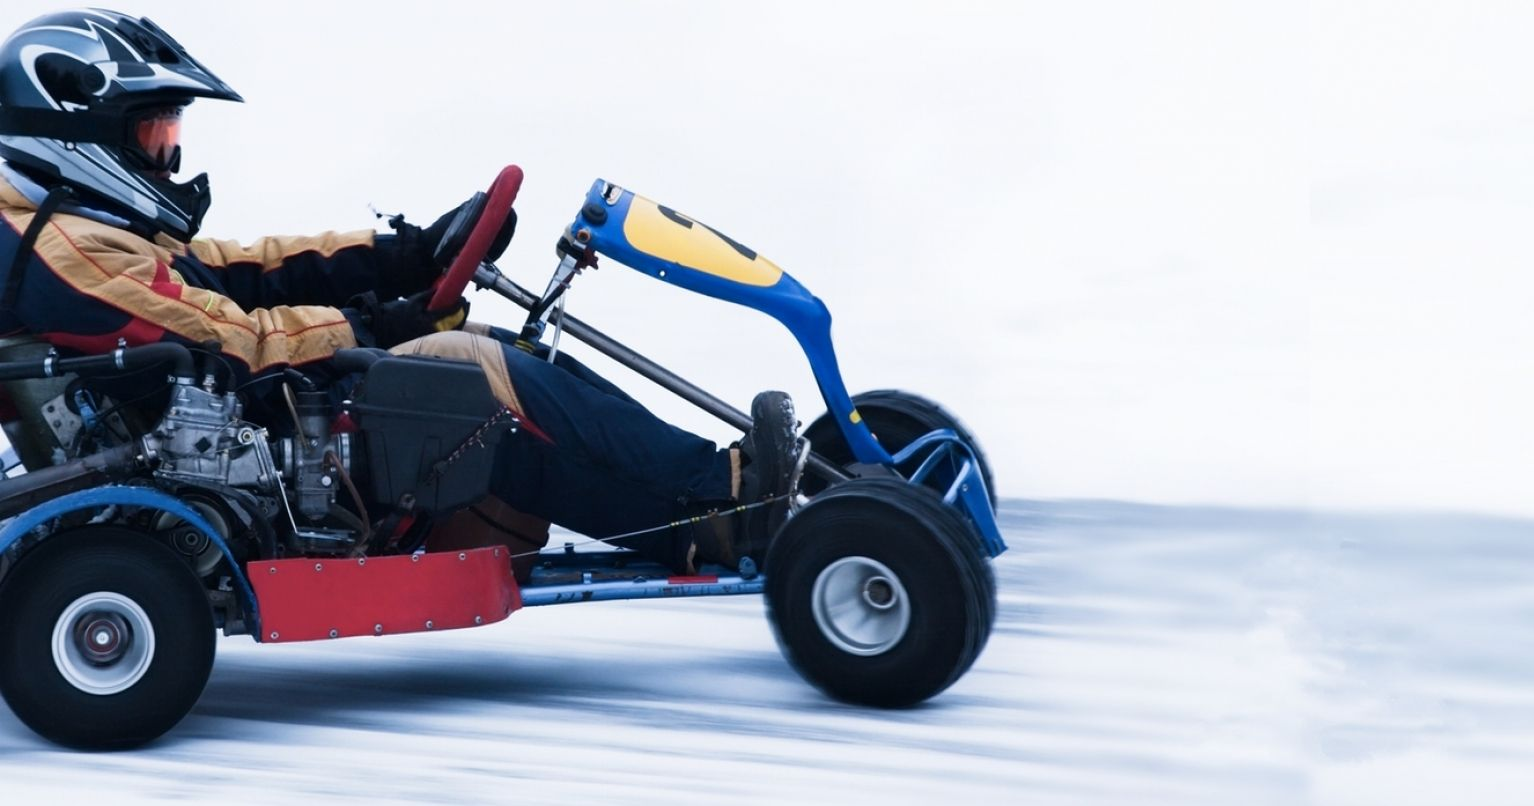 Go Kart Racing on Ice Finland Tinggly Experience Gifts